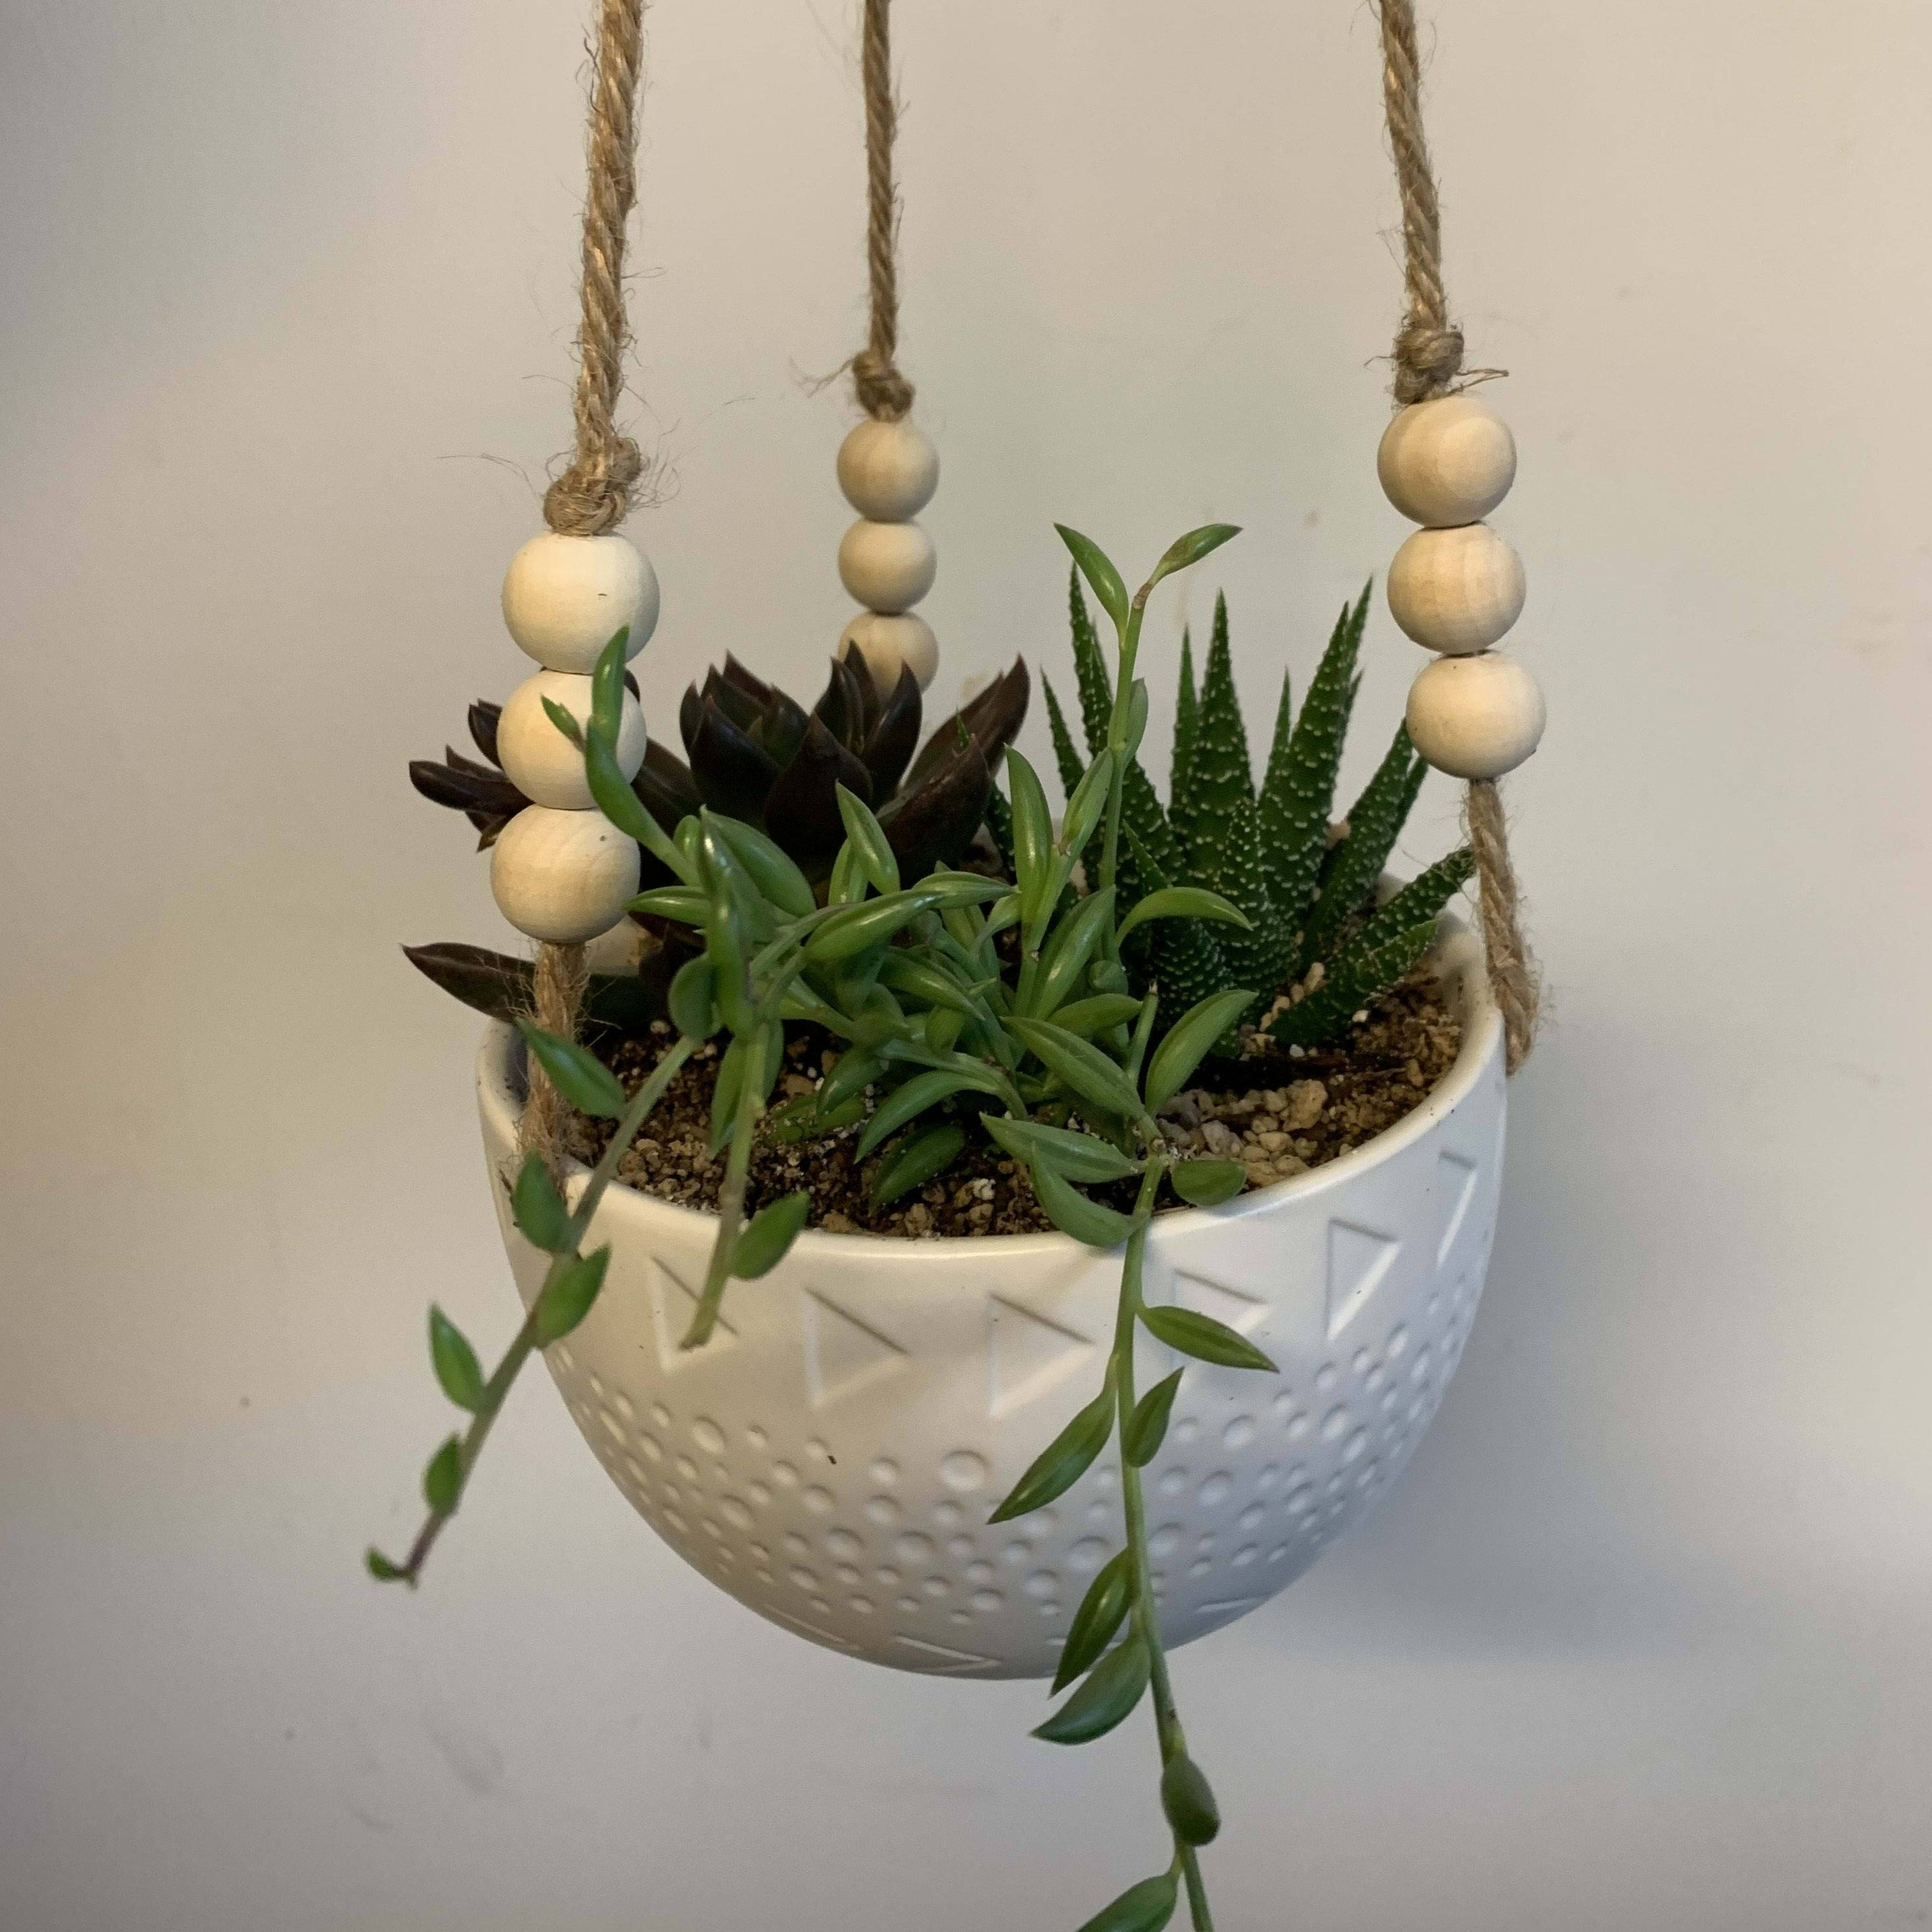 Hanging Succulent Bowl - Daily floral delivery from Botanica Floral Design